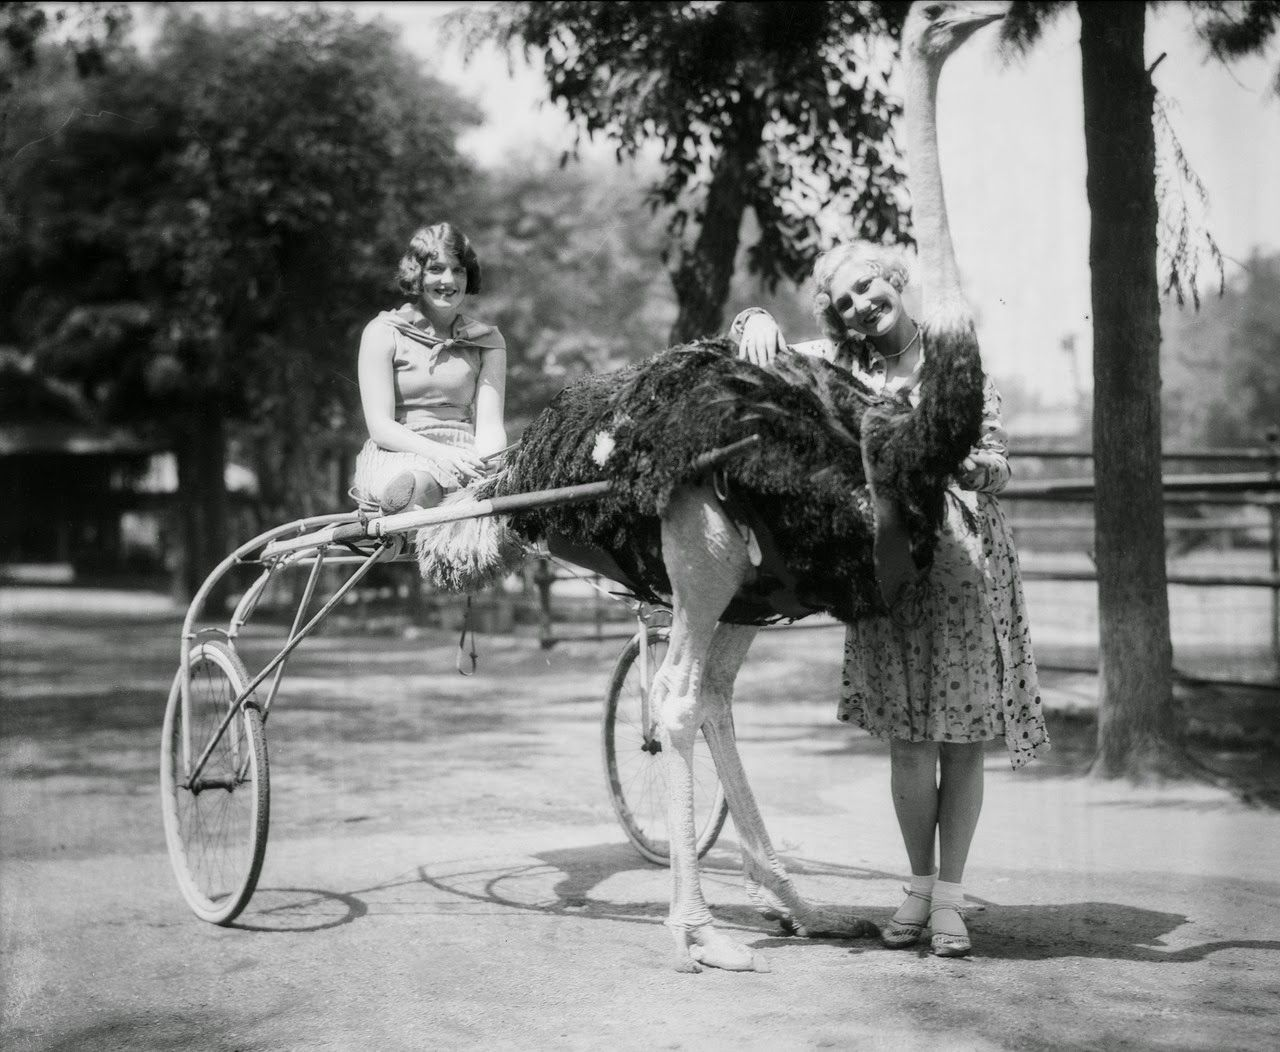 Before Disneyland, There were Ostrich Farms